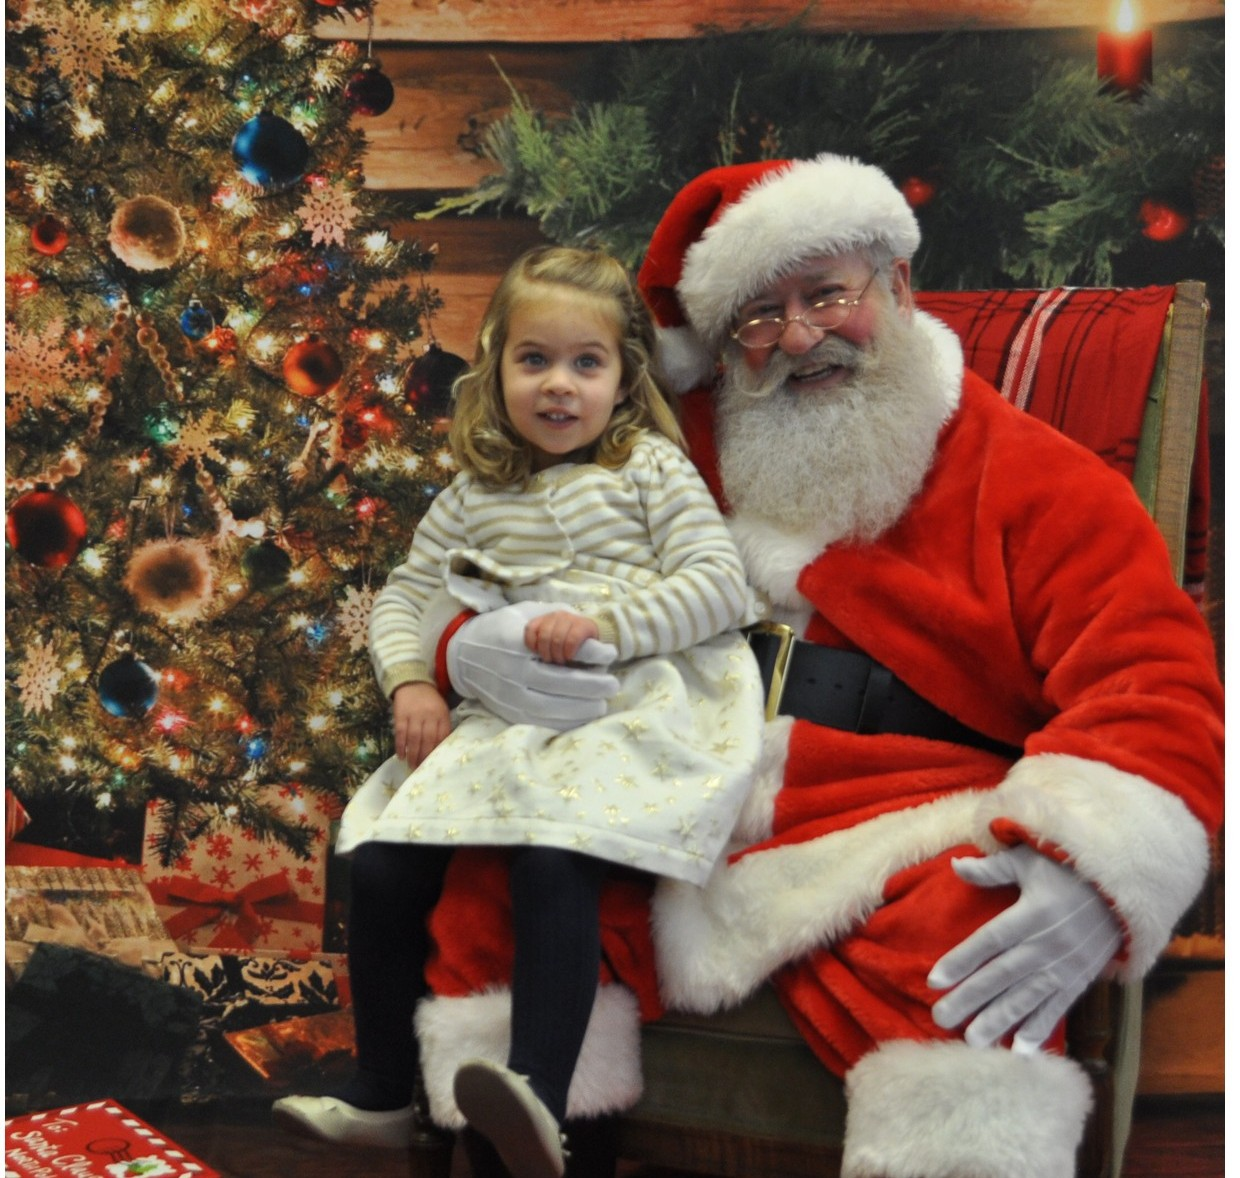 Santa and child at Breakfast with Santa event for Primrose School of St. Charles at Heritage located in St. Peters